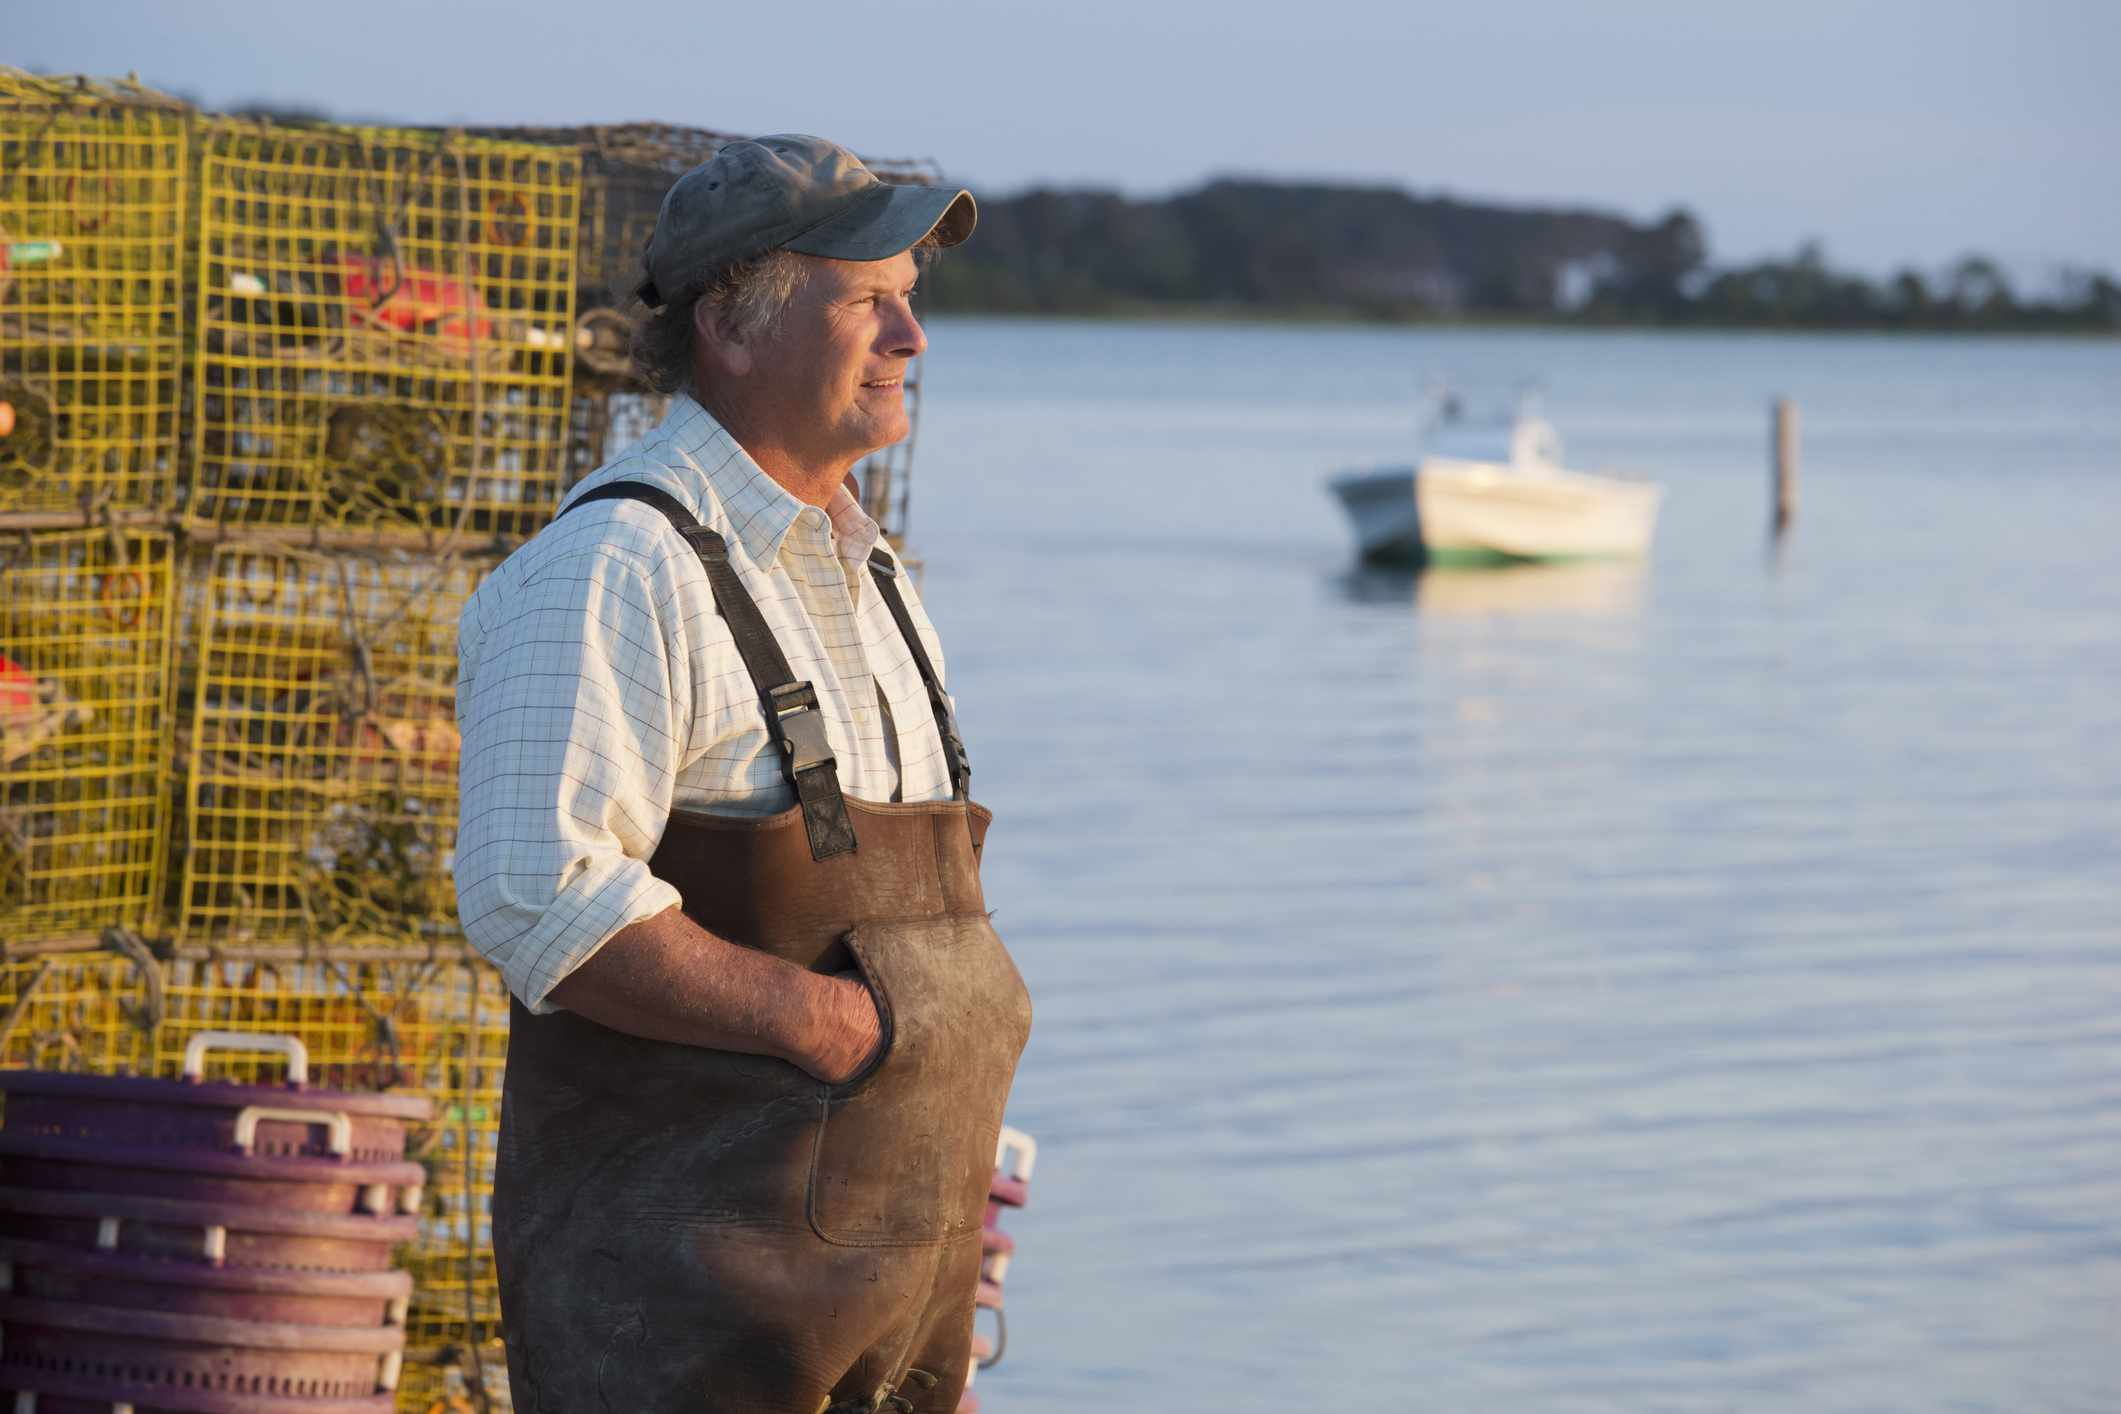 A white old fisherman against cages looking at the bay.